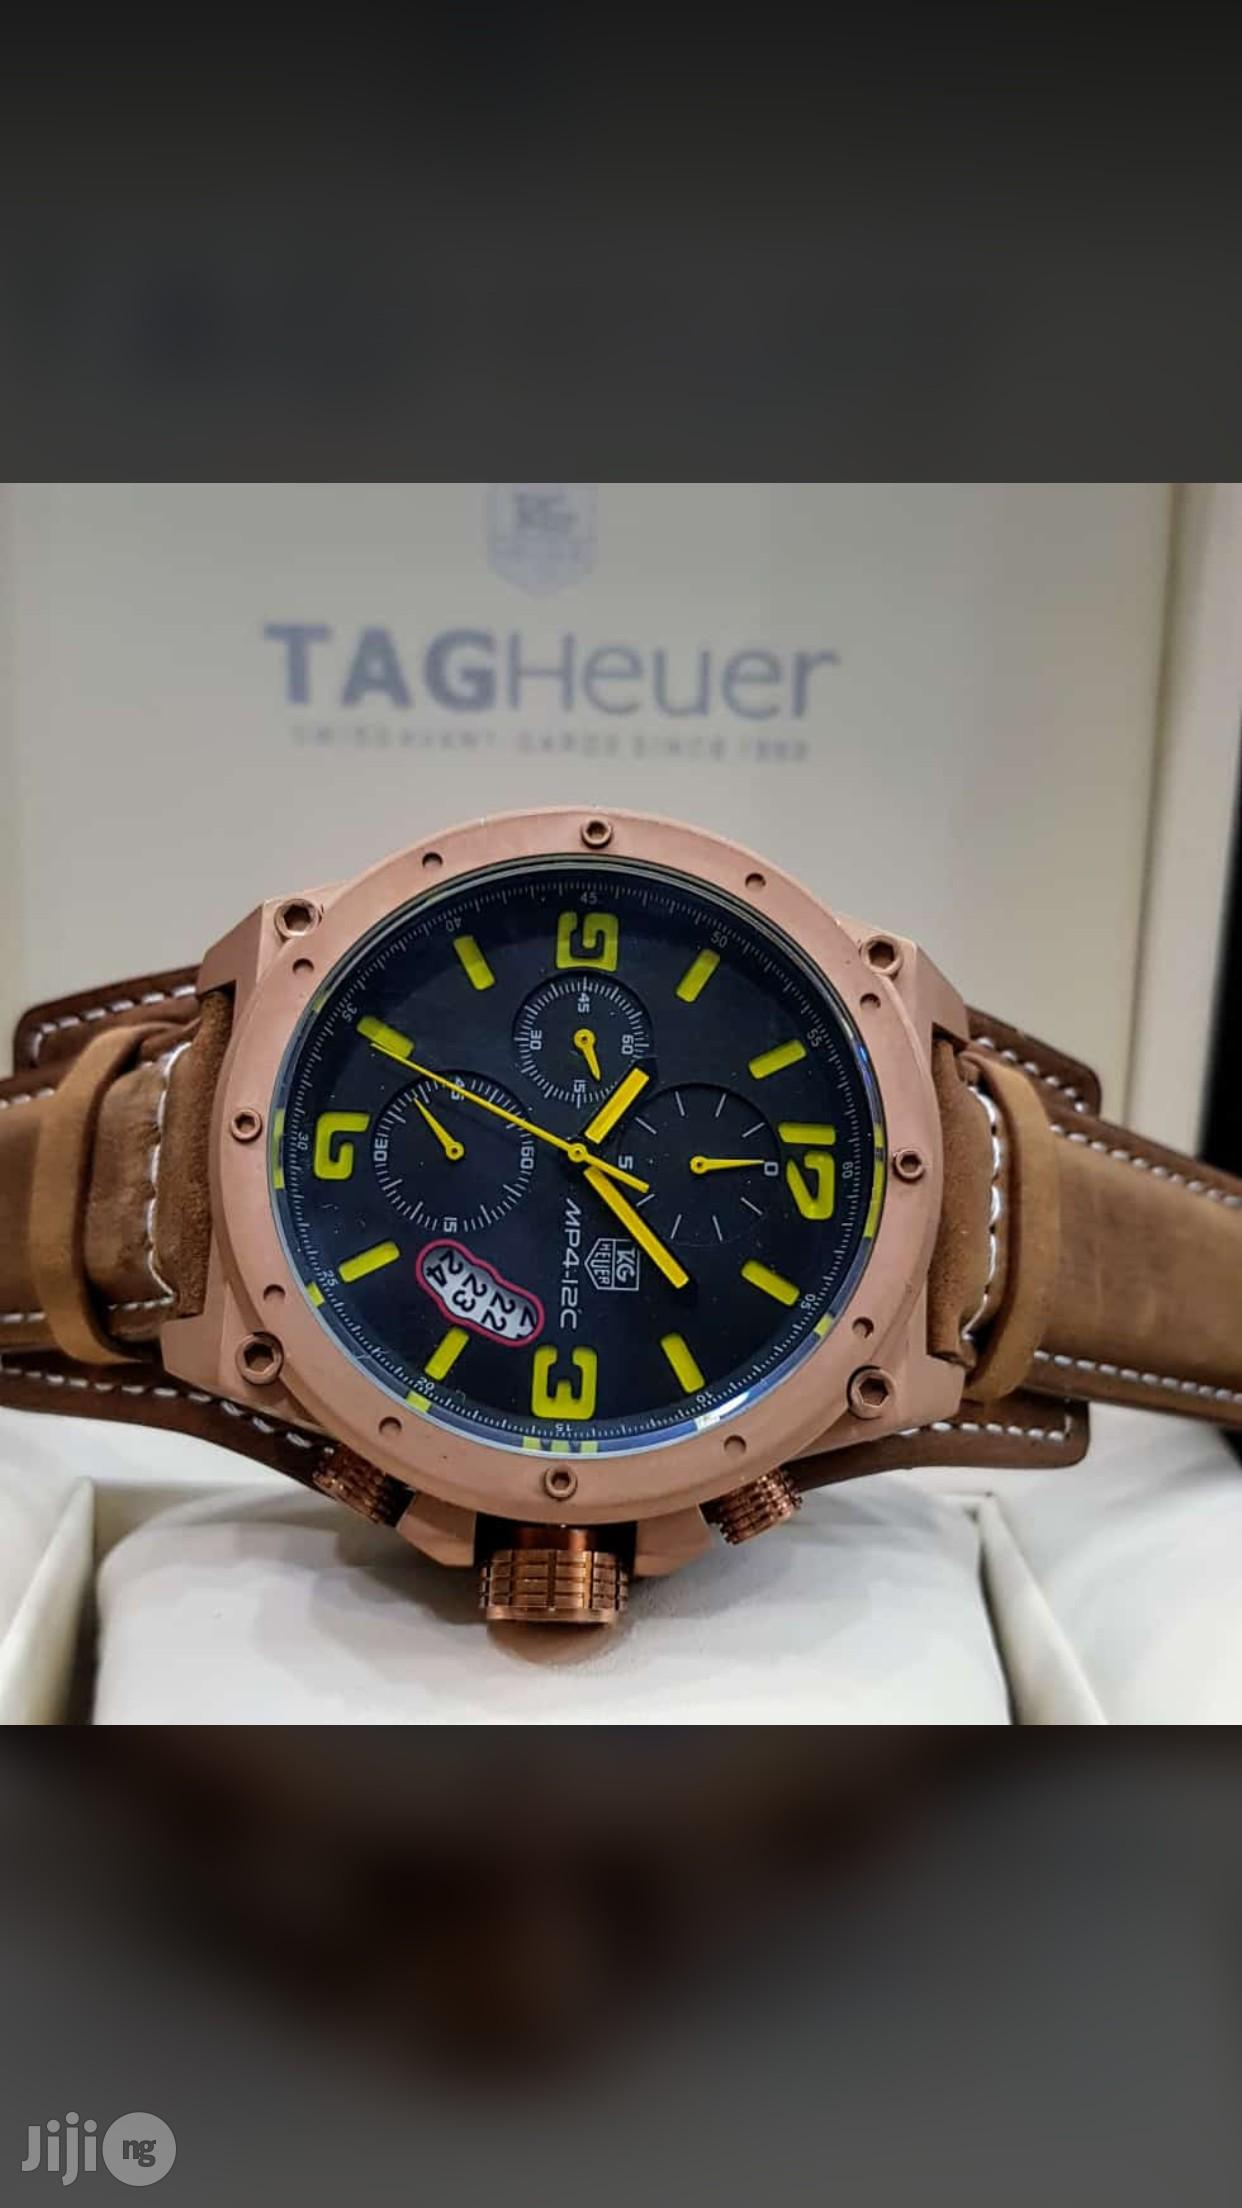 Tag Heuer Genuine Leather Strap Chronograph Watch